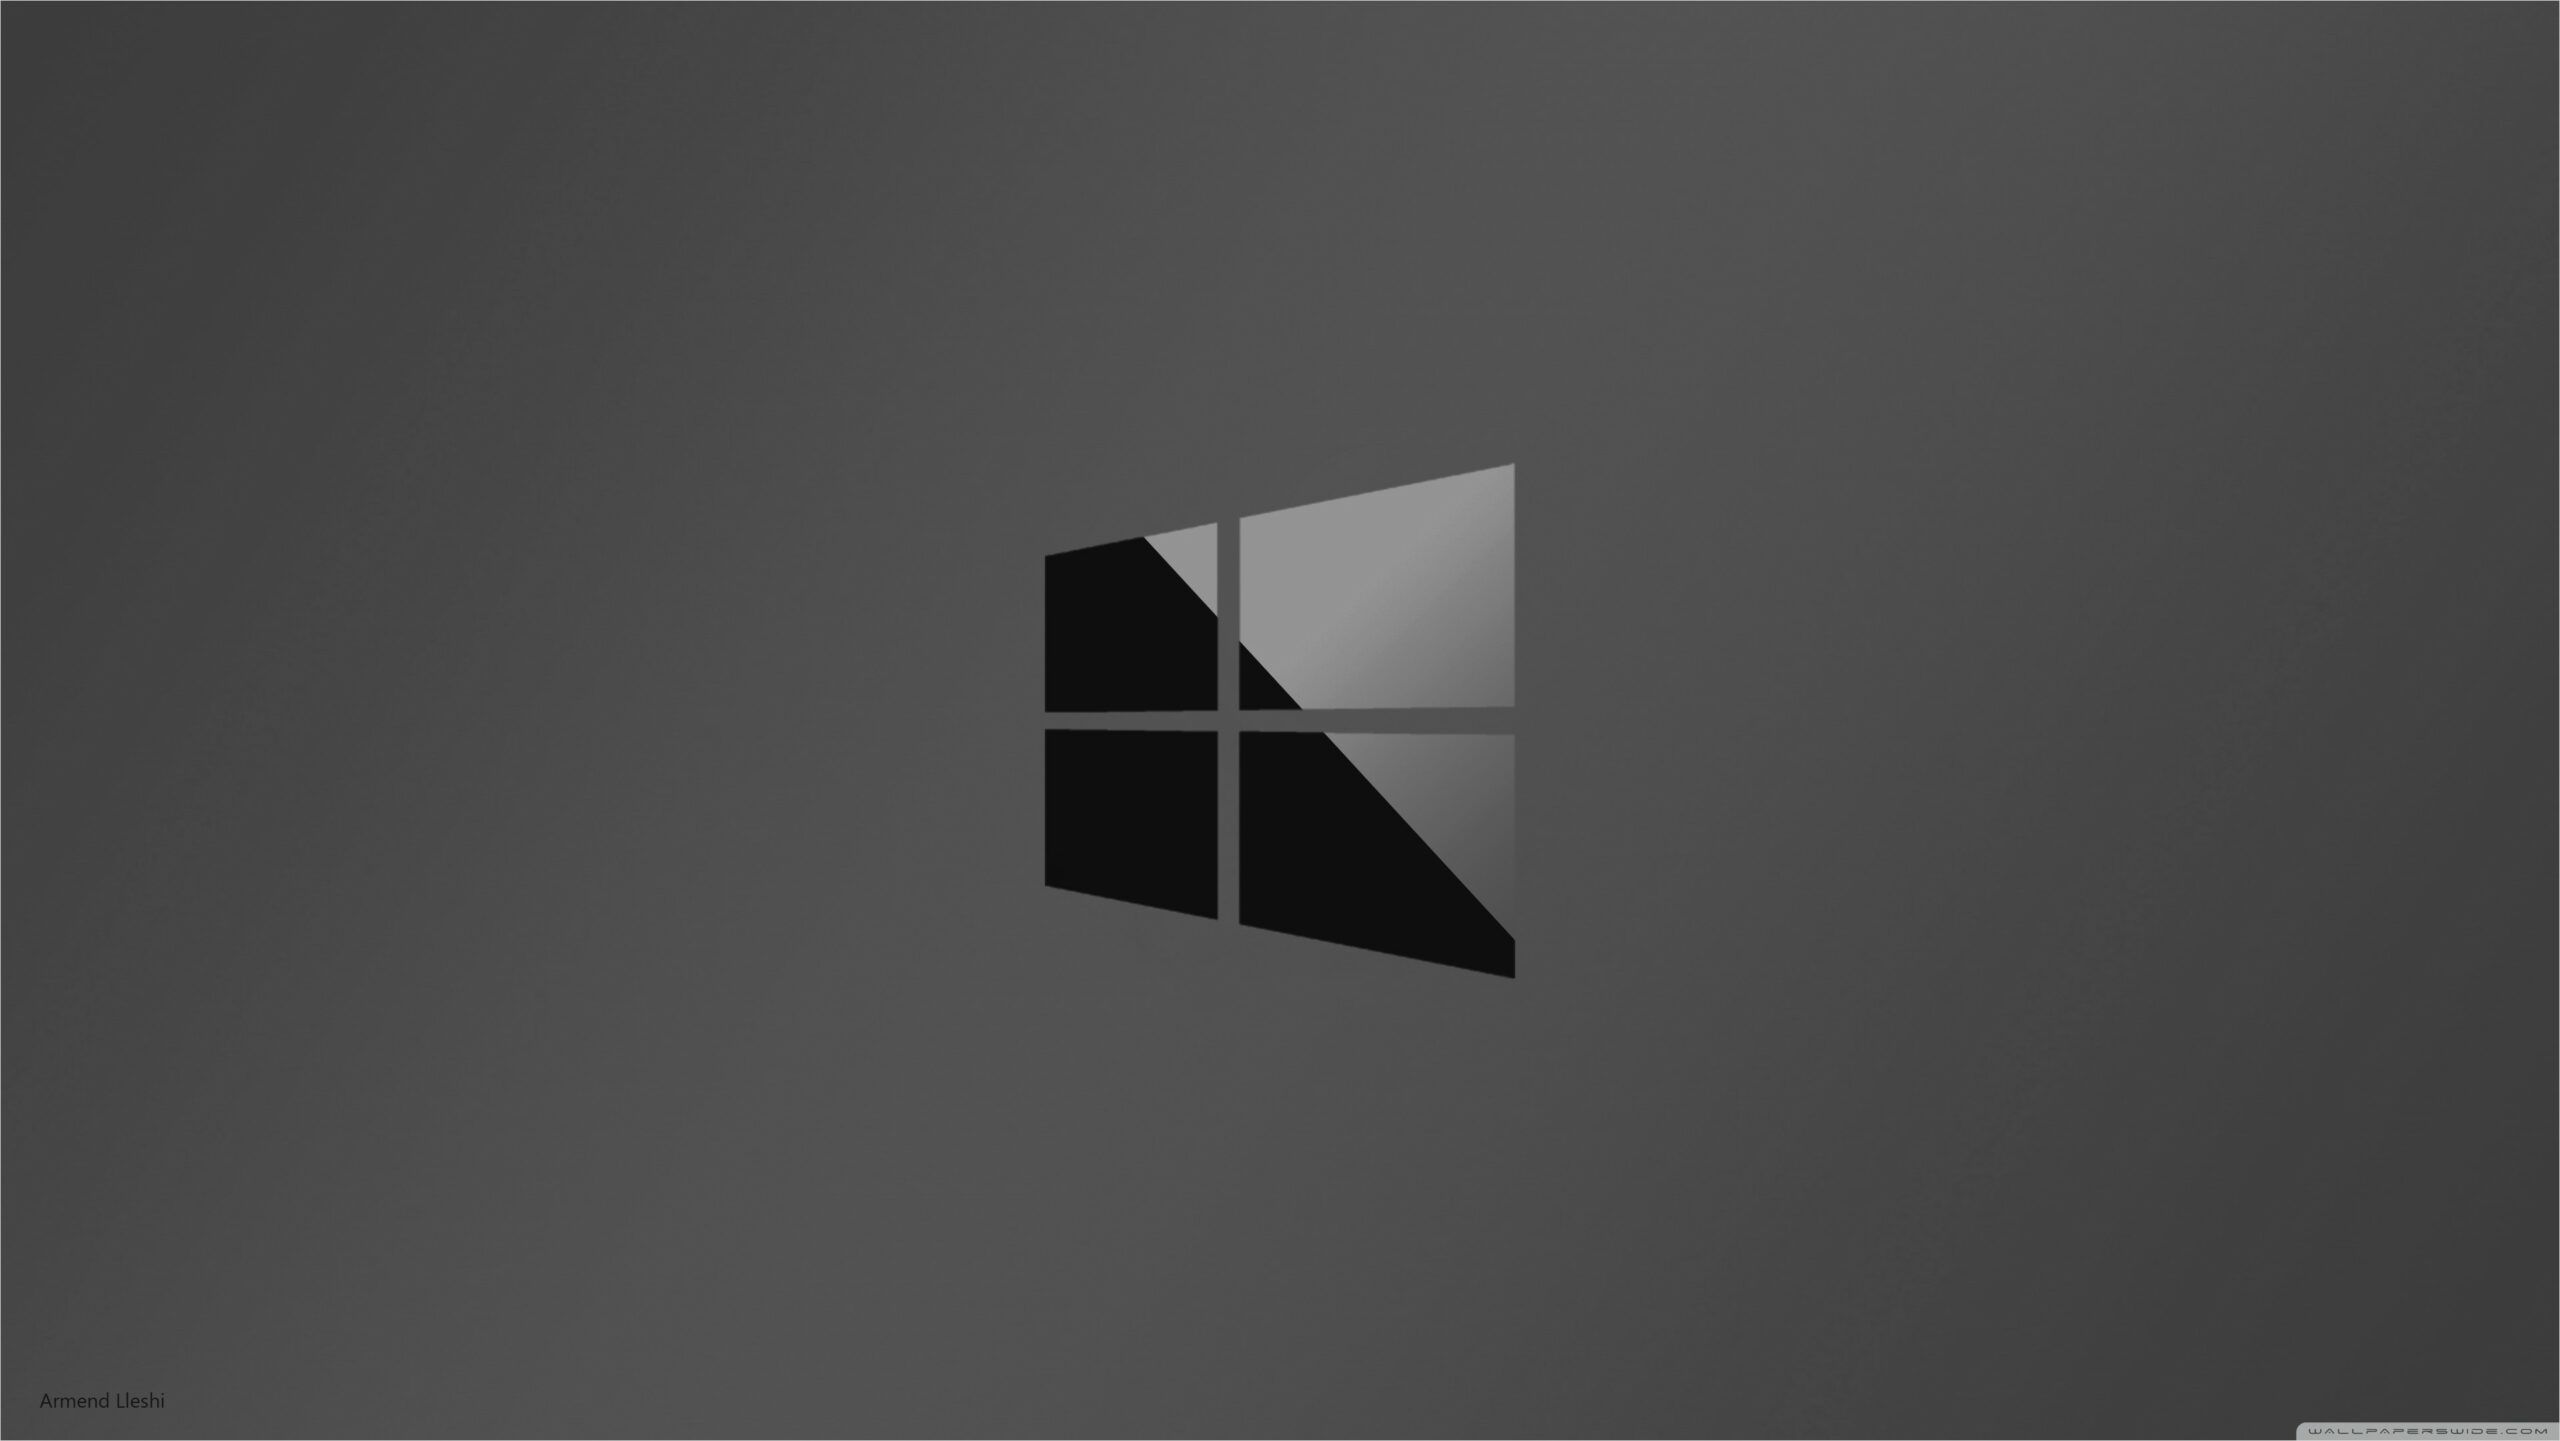 10 Mb 4k Wallpaper In 2020 Desktop Wallpaper Black Wallpaper Windows 10 Windows Wallpaper